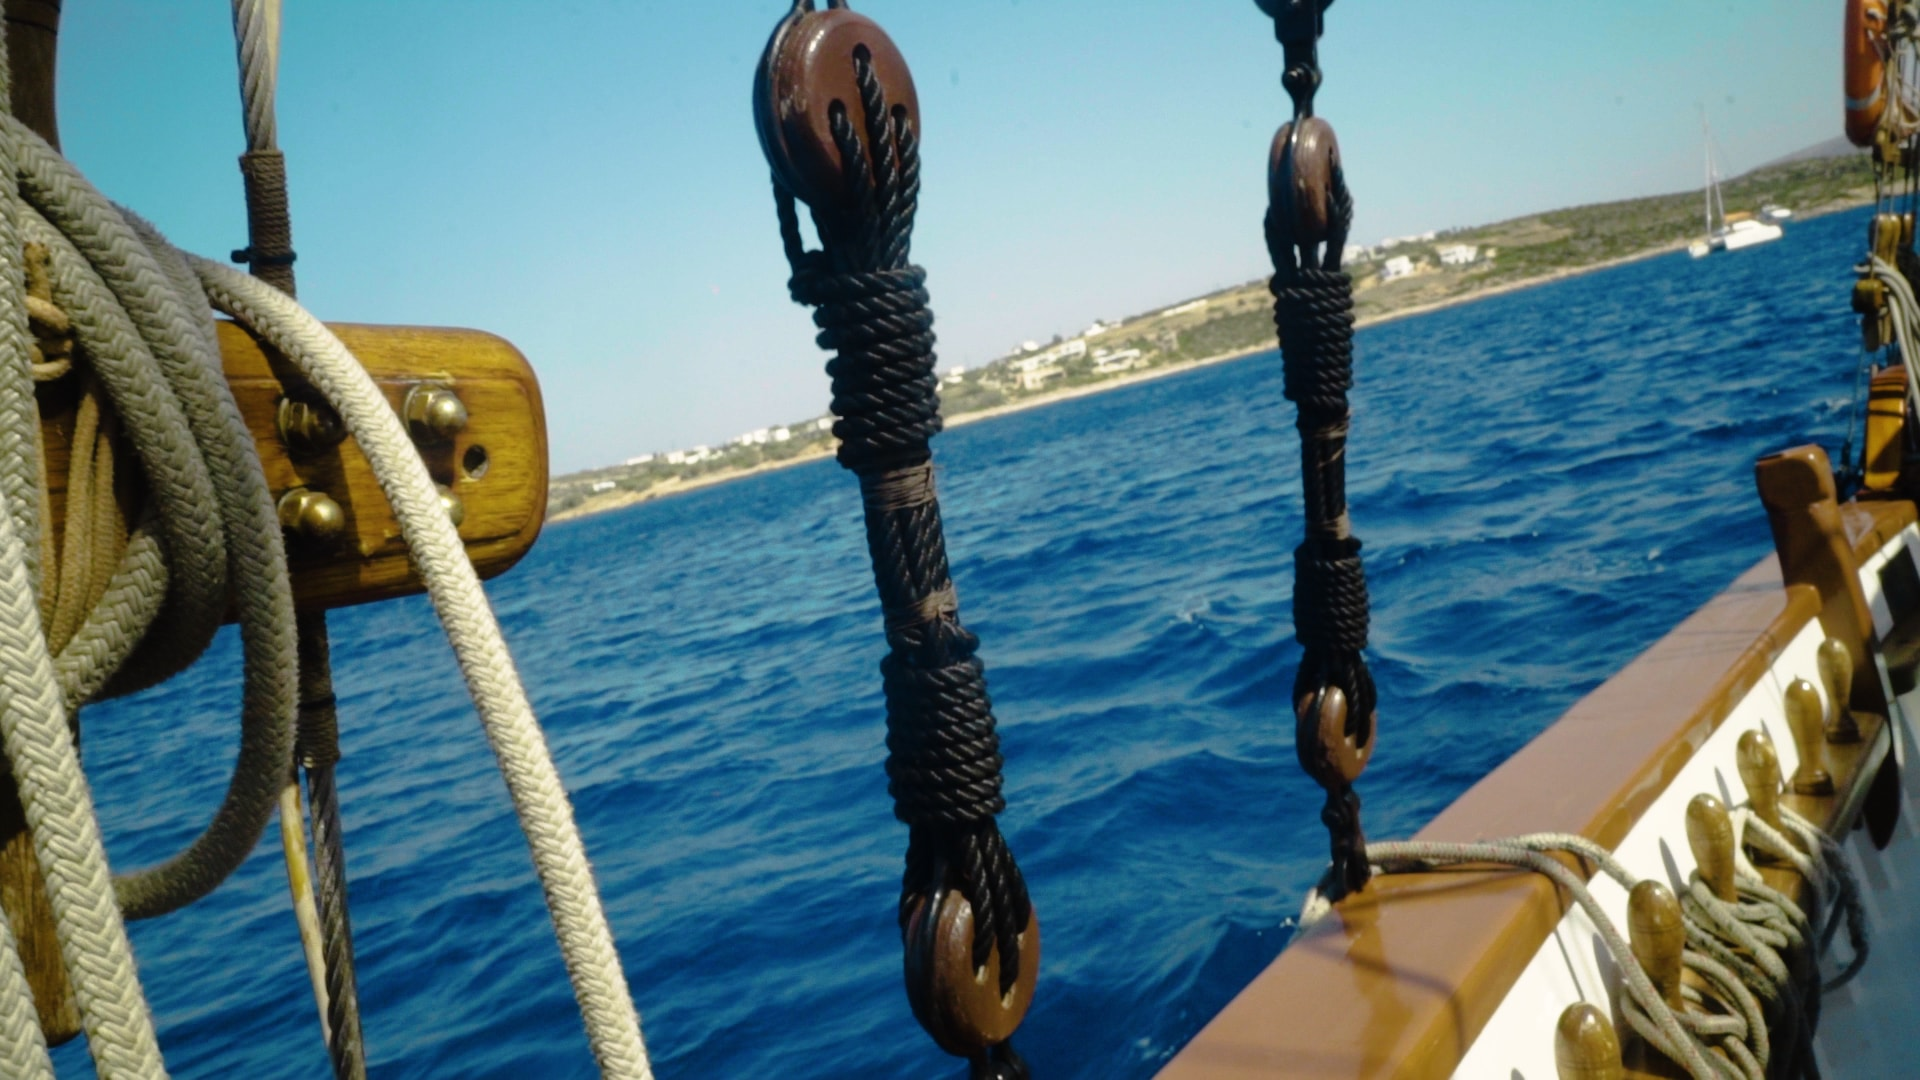 visit-cyclades_private-cruise_paros-islands_boat-view-2